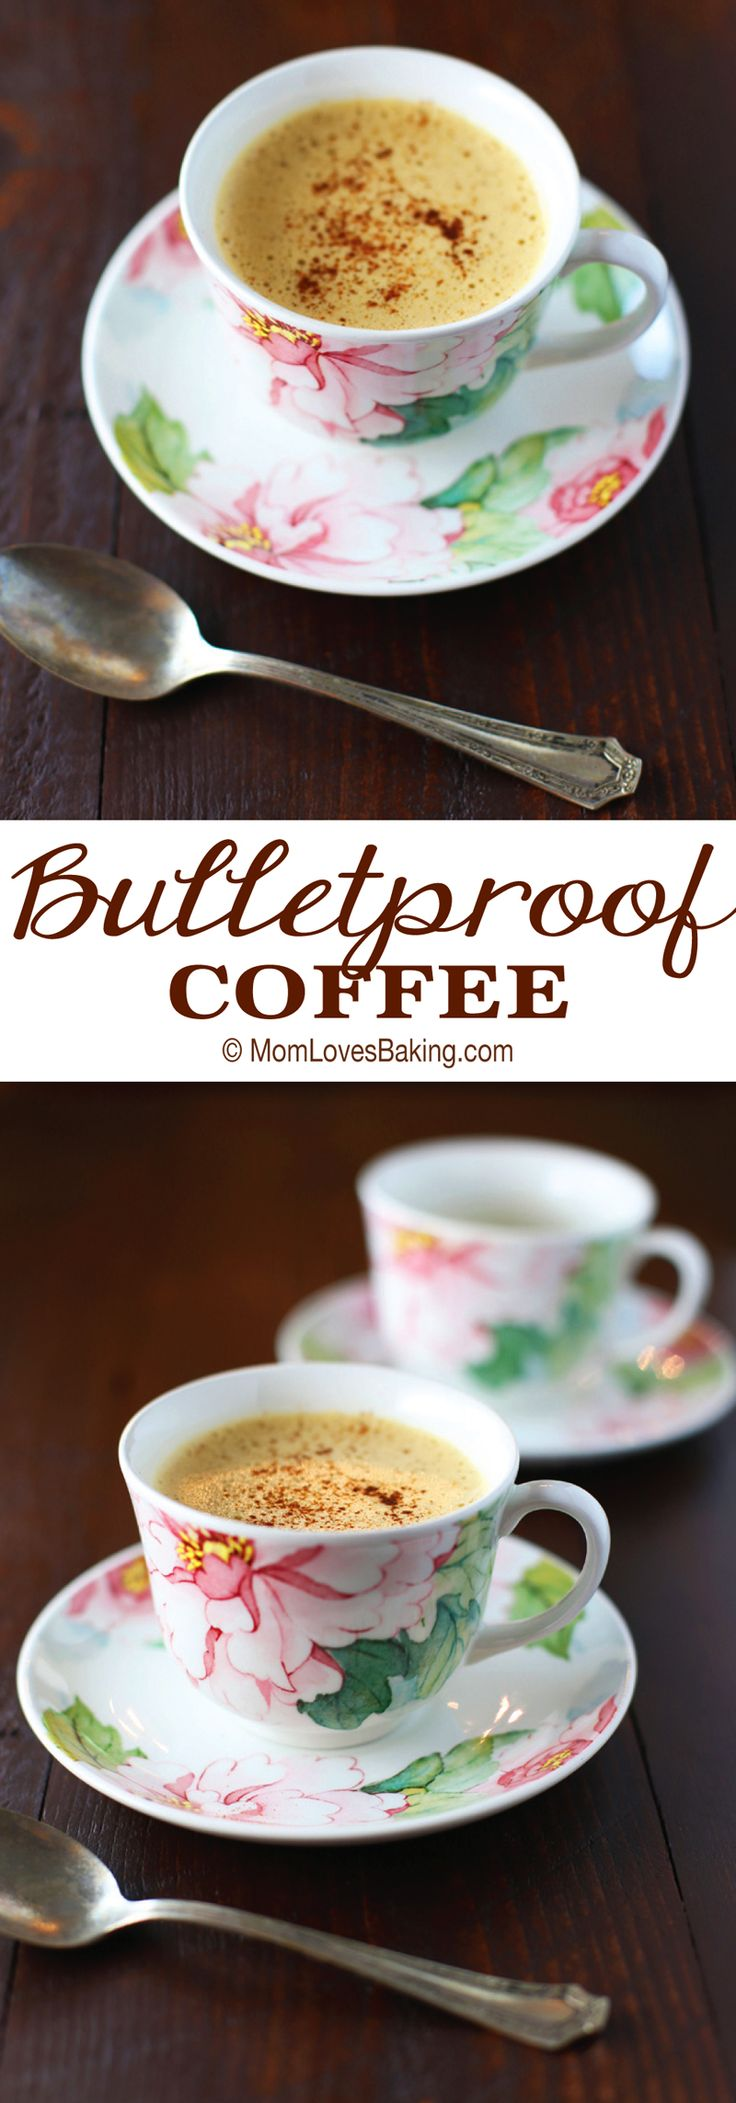 Have you ever heard of Bulletproof Coffee? It's a delicious, paleo friendly drink that some say can help you lose weight. I love it because it's just 3 ingredients and so tasty! Get the recipe on MomLovesBaking.com